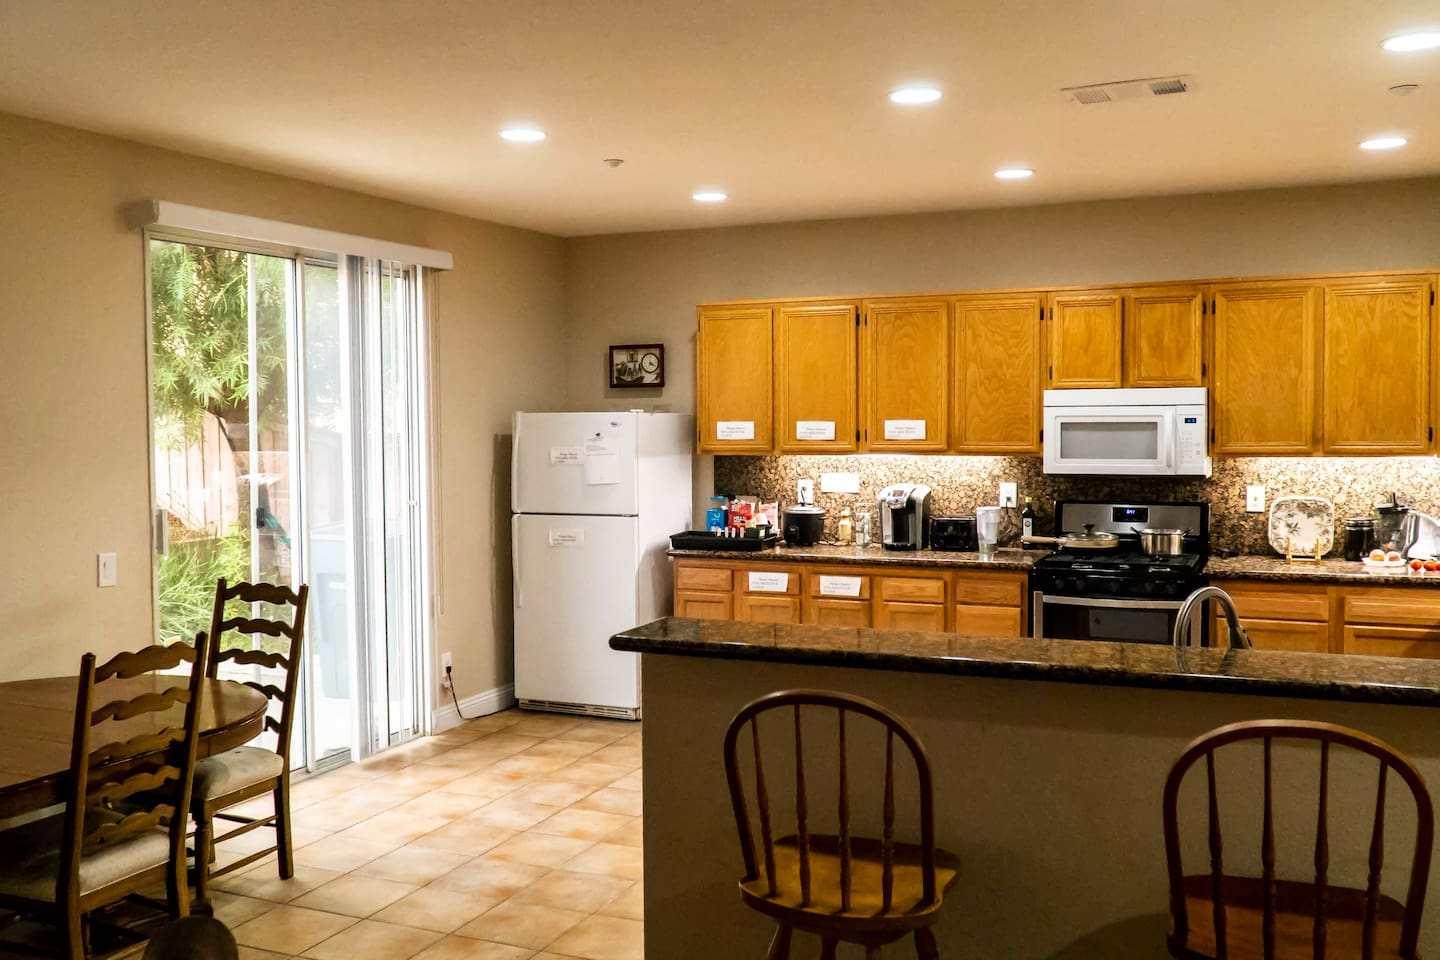 Beautiful spacious kitchen with fridge, microwave, Keurig coffee maker, silverware, and lots of cabinet space.